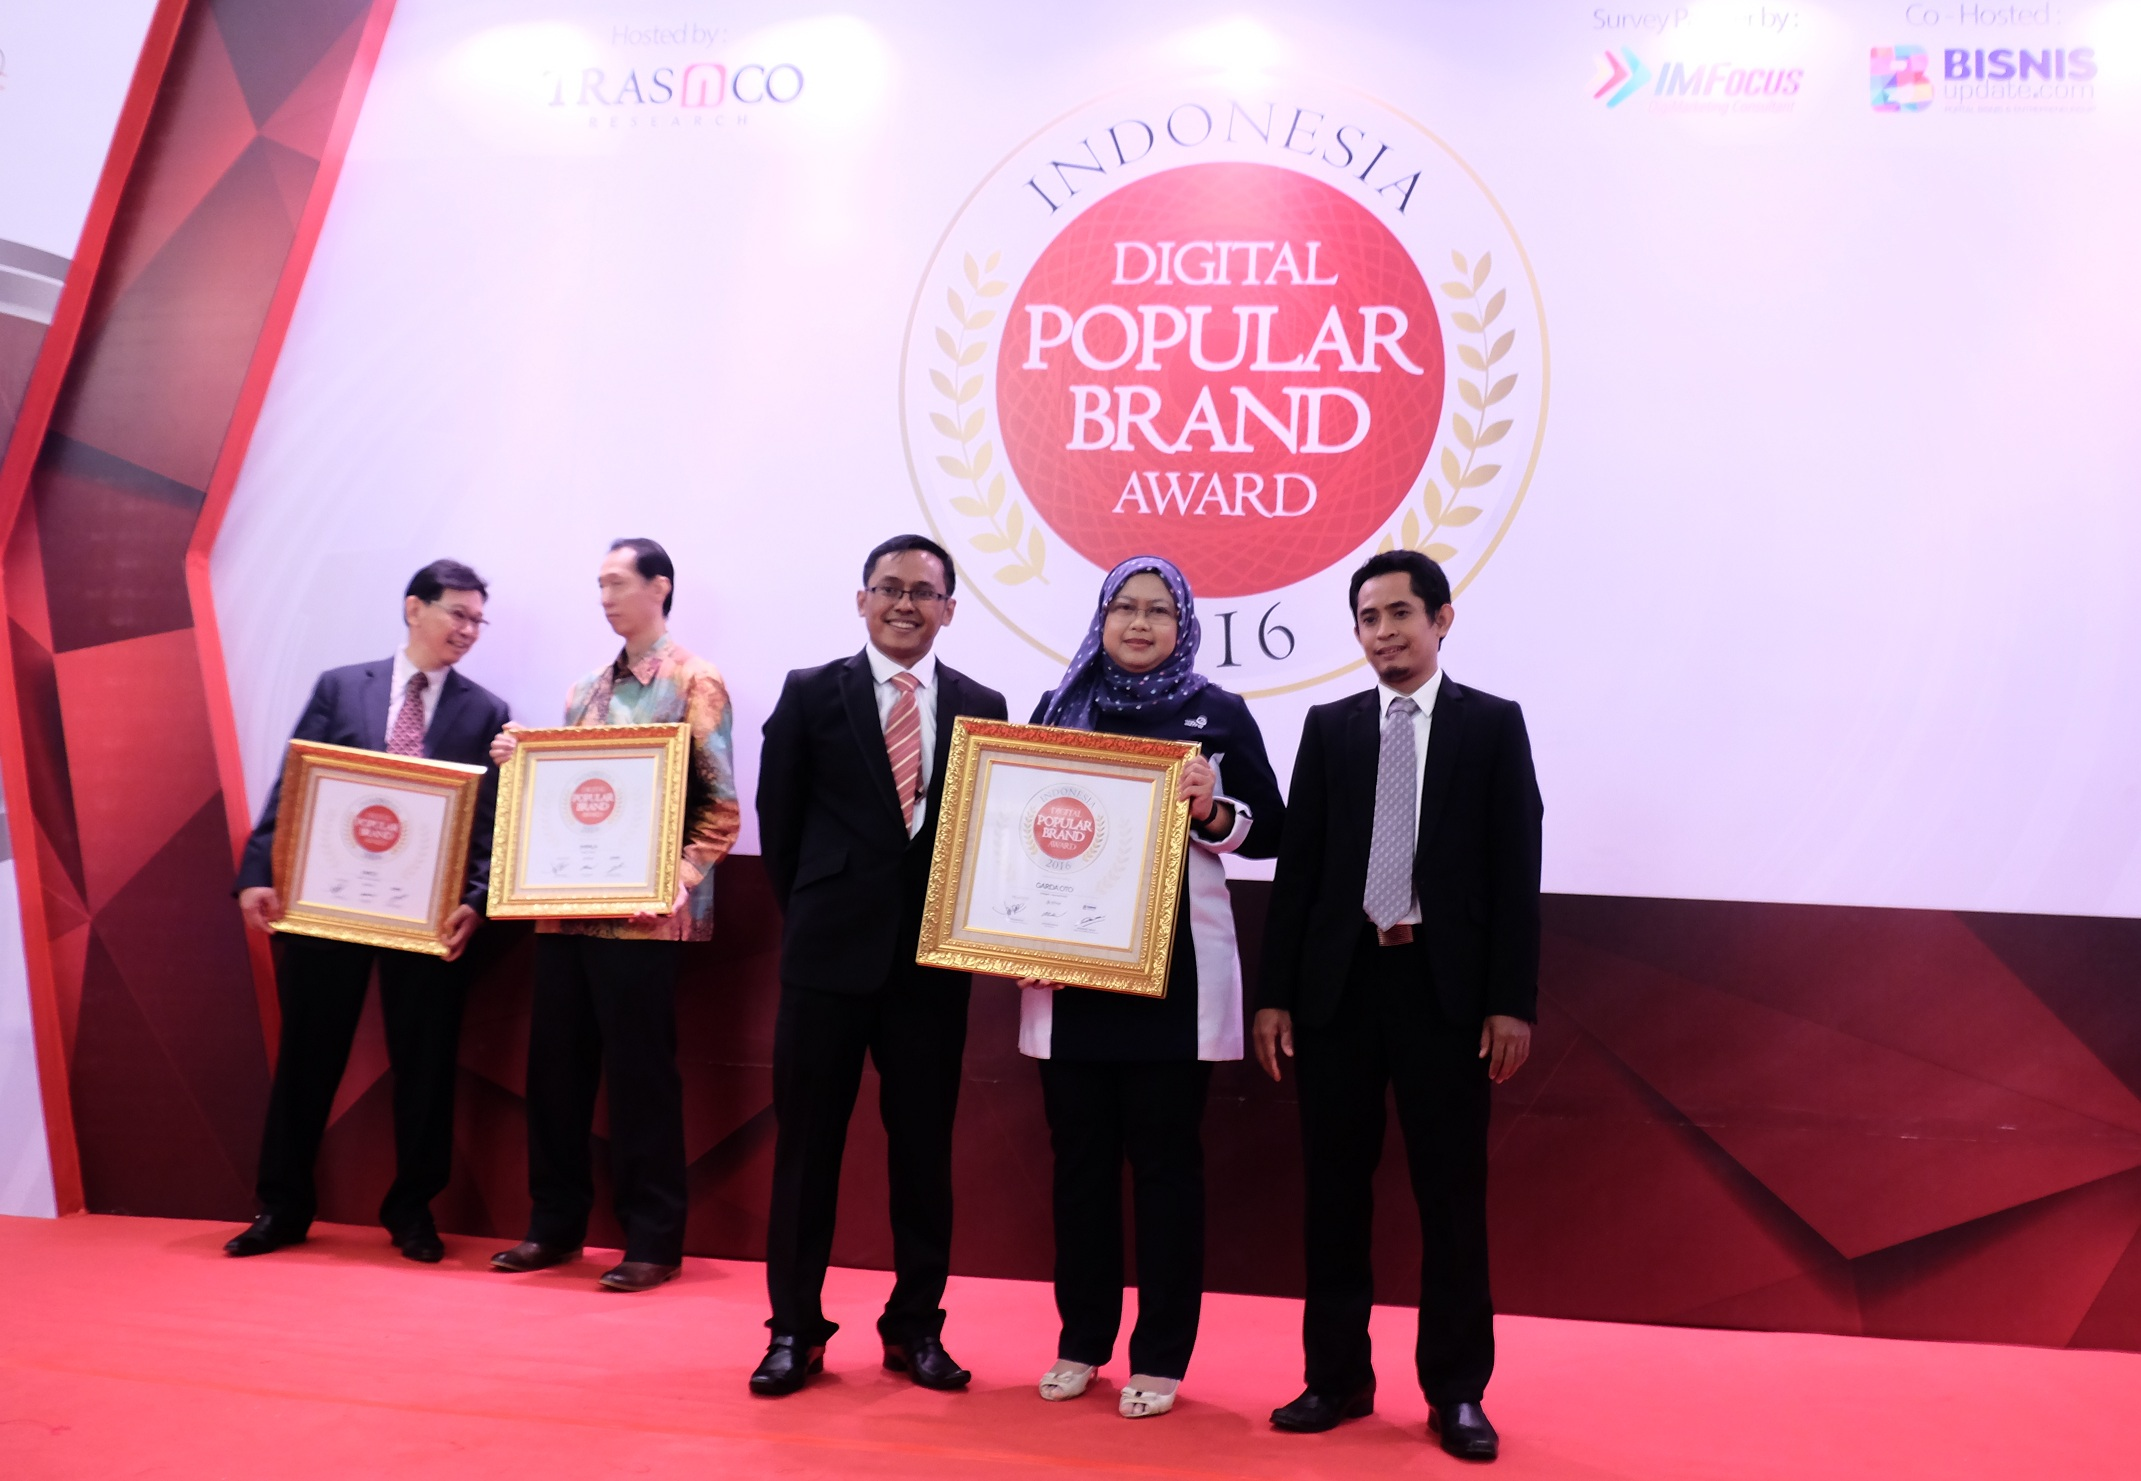 Lusi Liesdiani, SVP Digital Channel Asuransi Astra saat menerima Indonesia Digital Popular Brand Award 2016